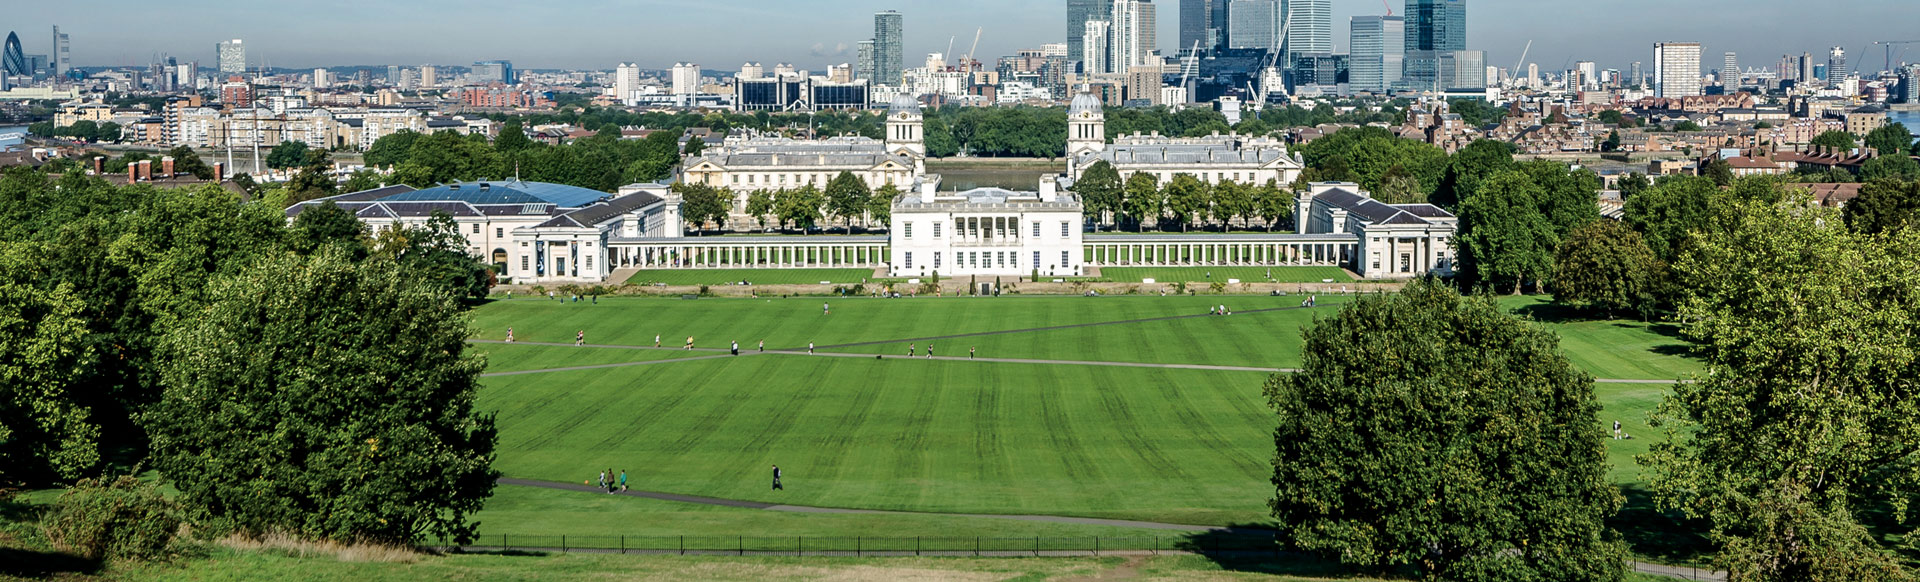 The Queen's House in Greenwich with Canary Wharf in the background